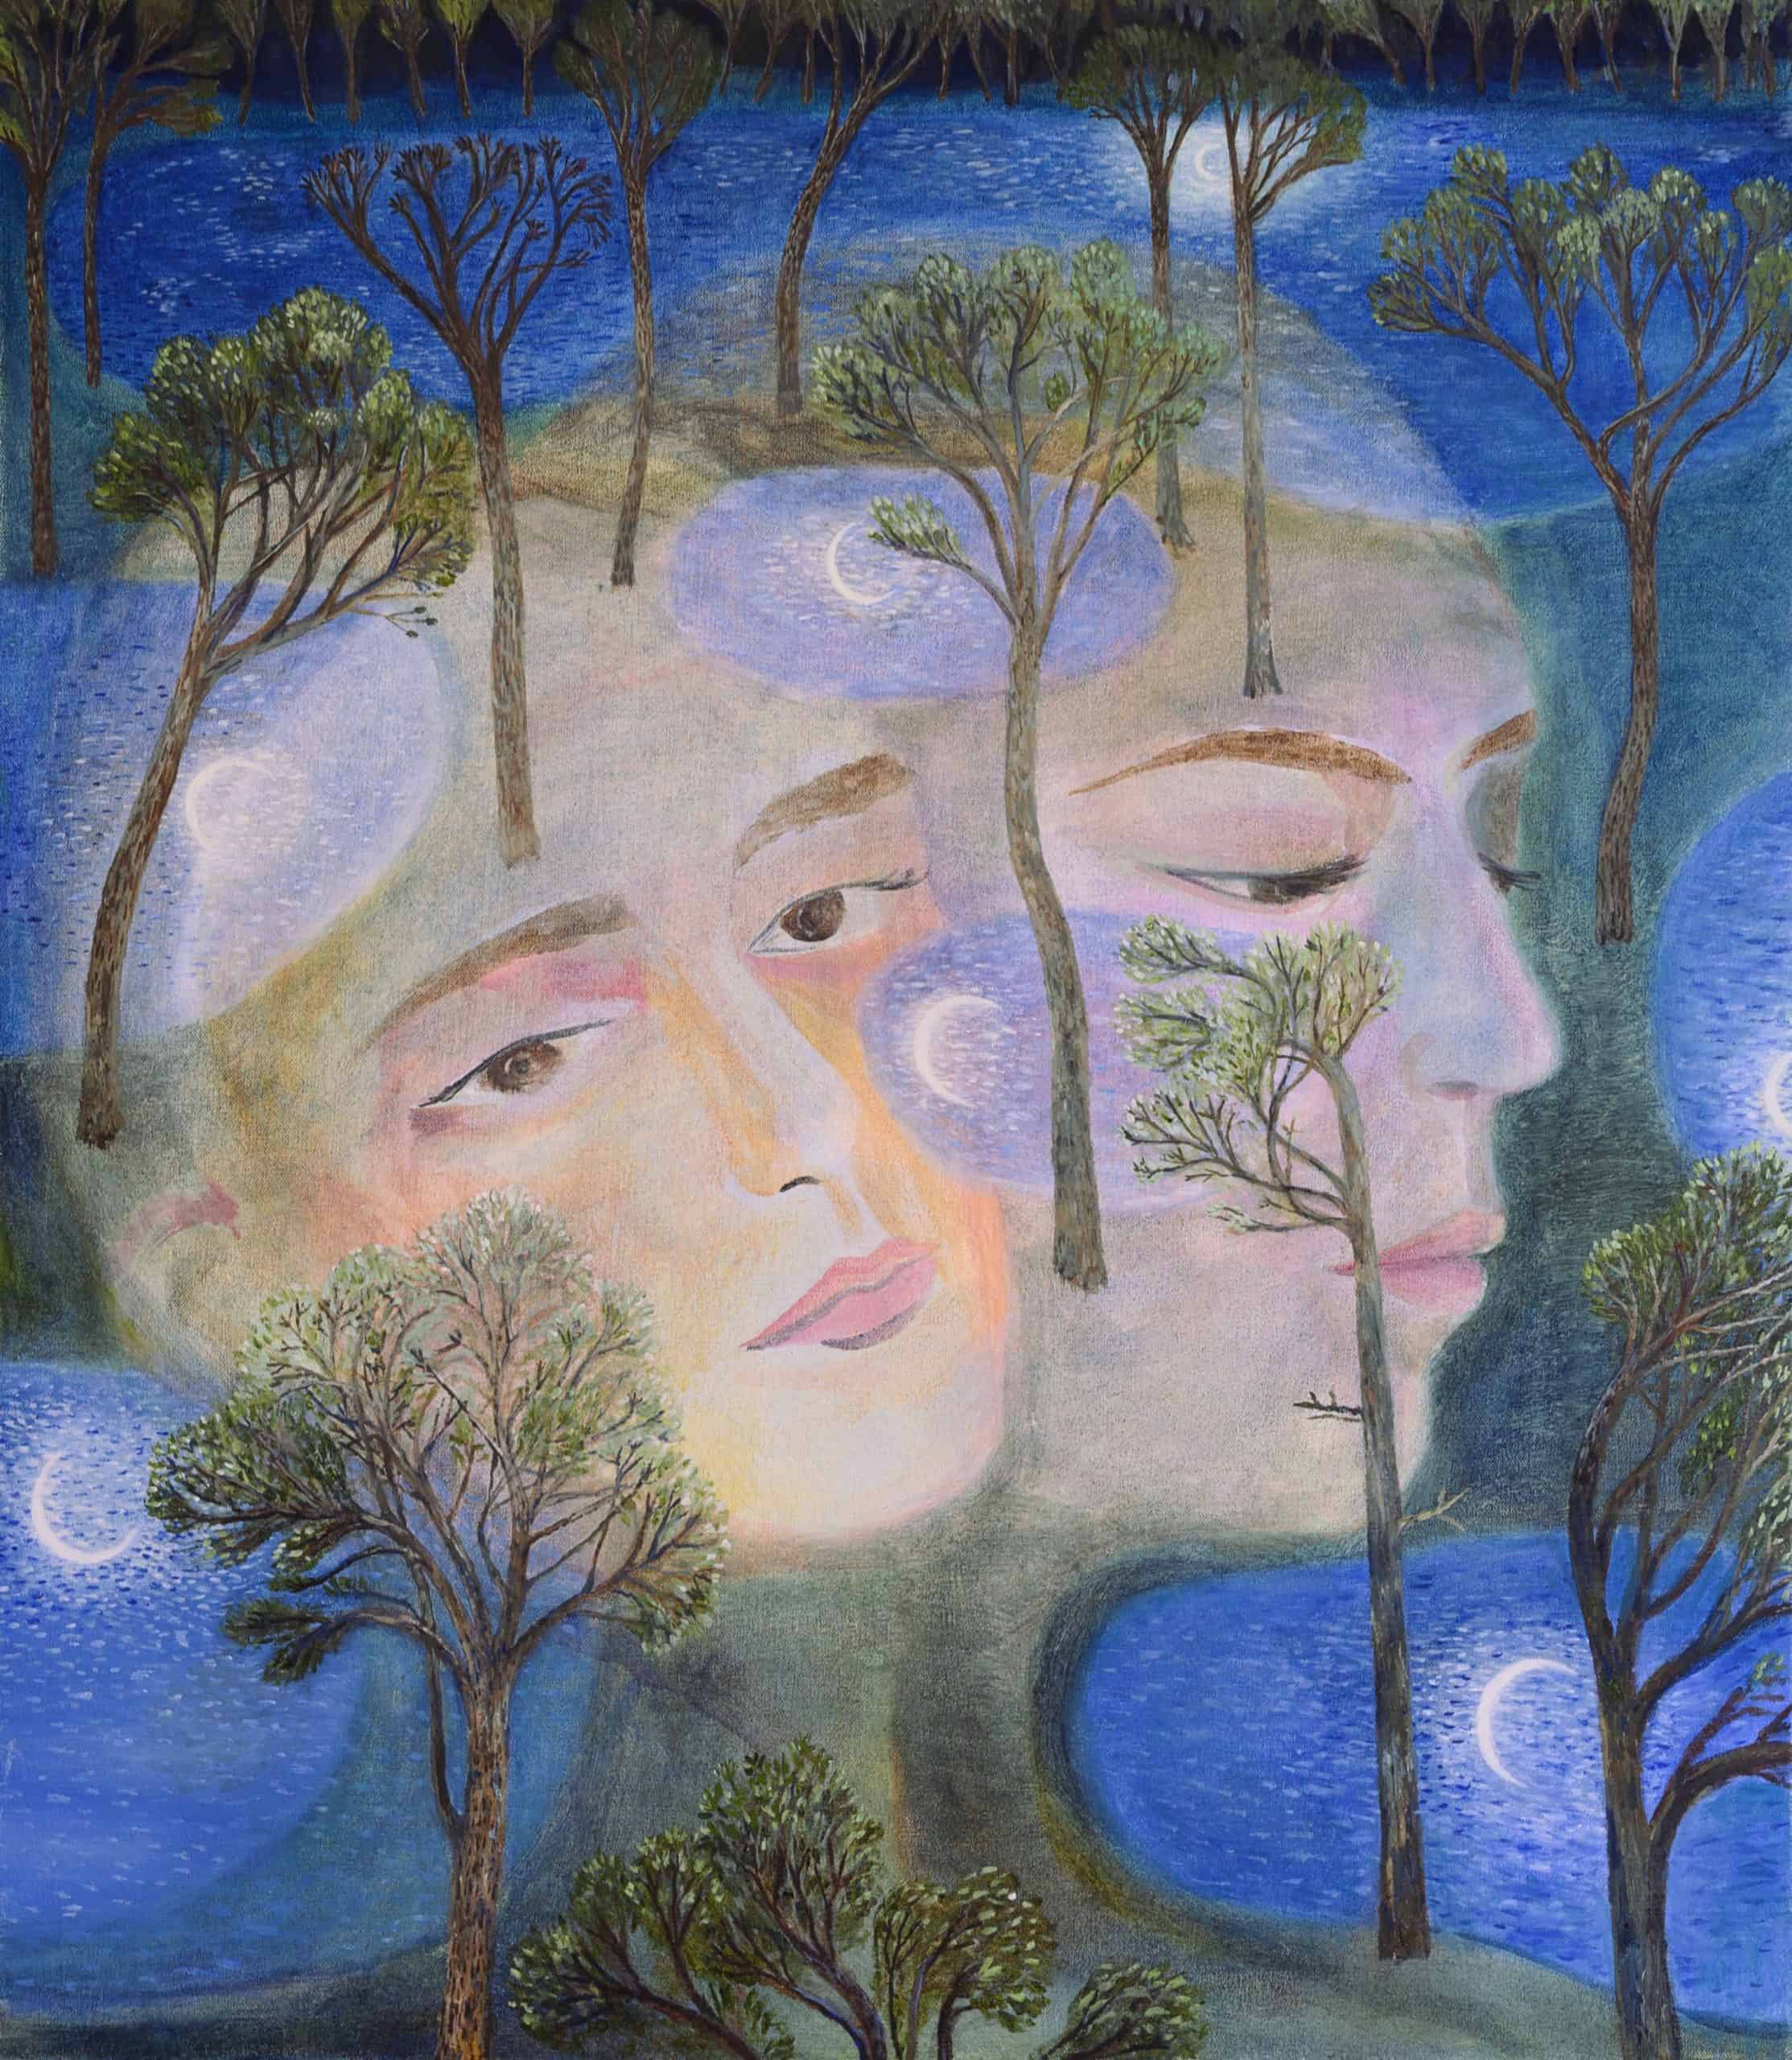 Ethereal faces dream at night upon a landscape of moonlit ponds.